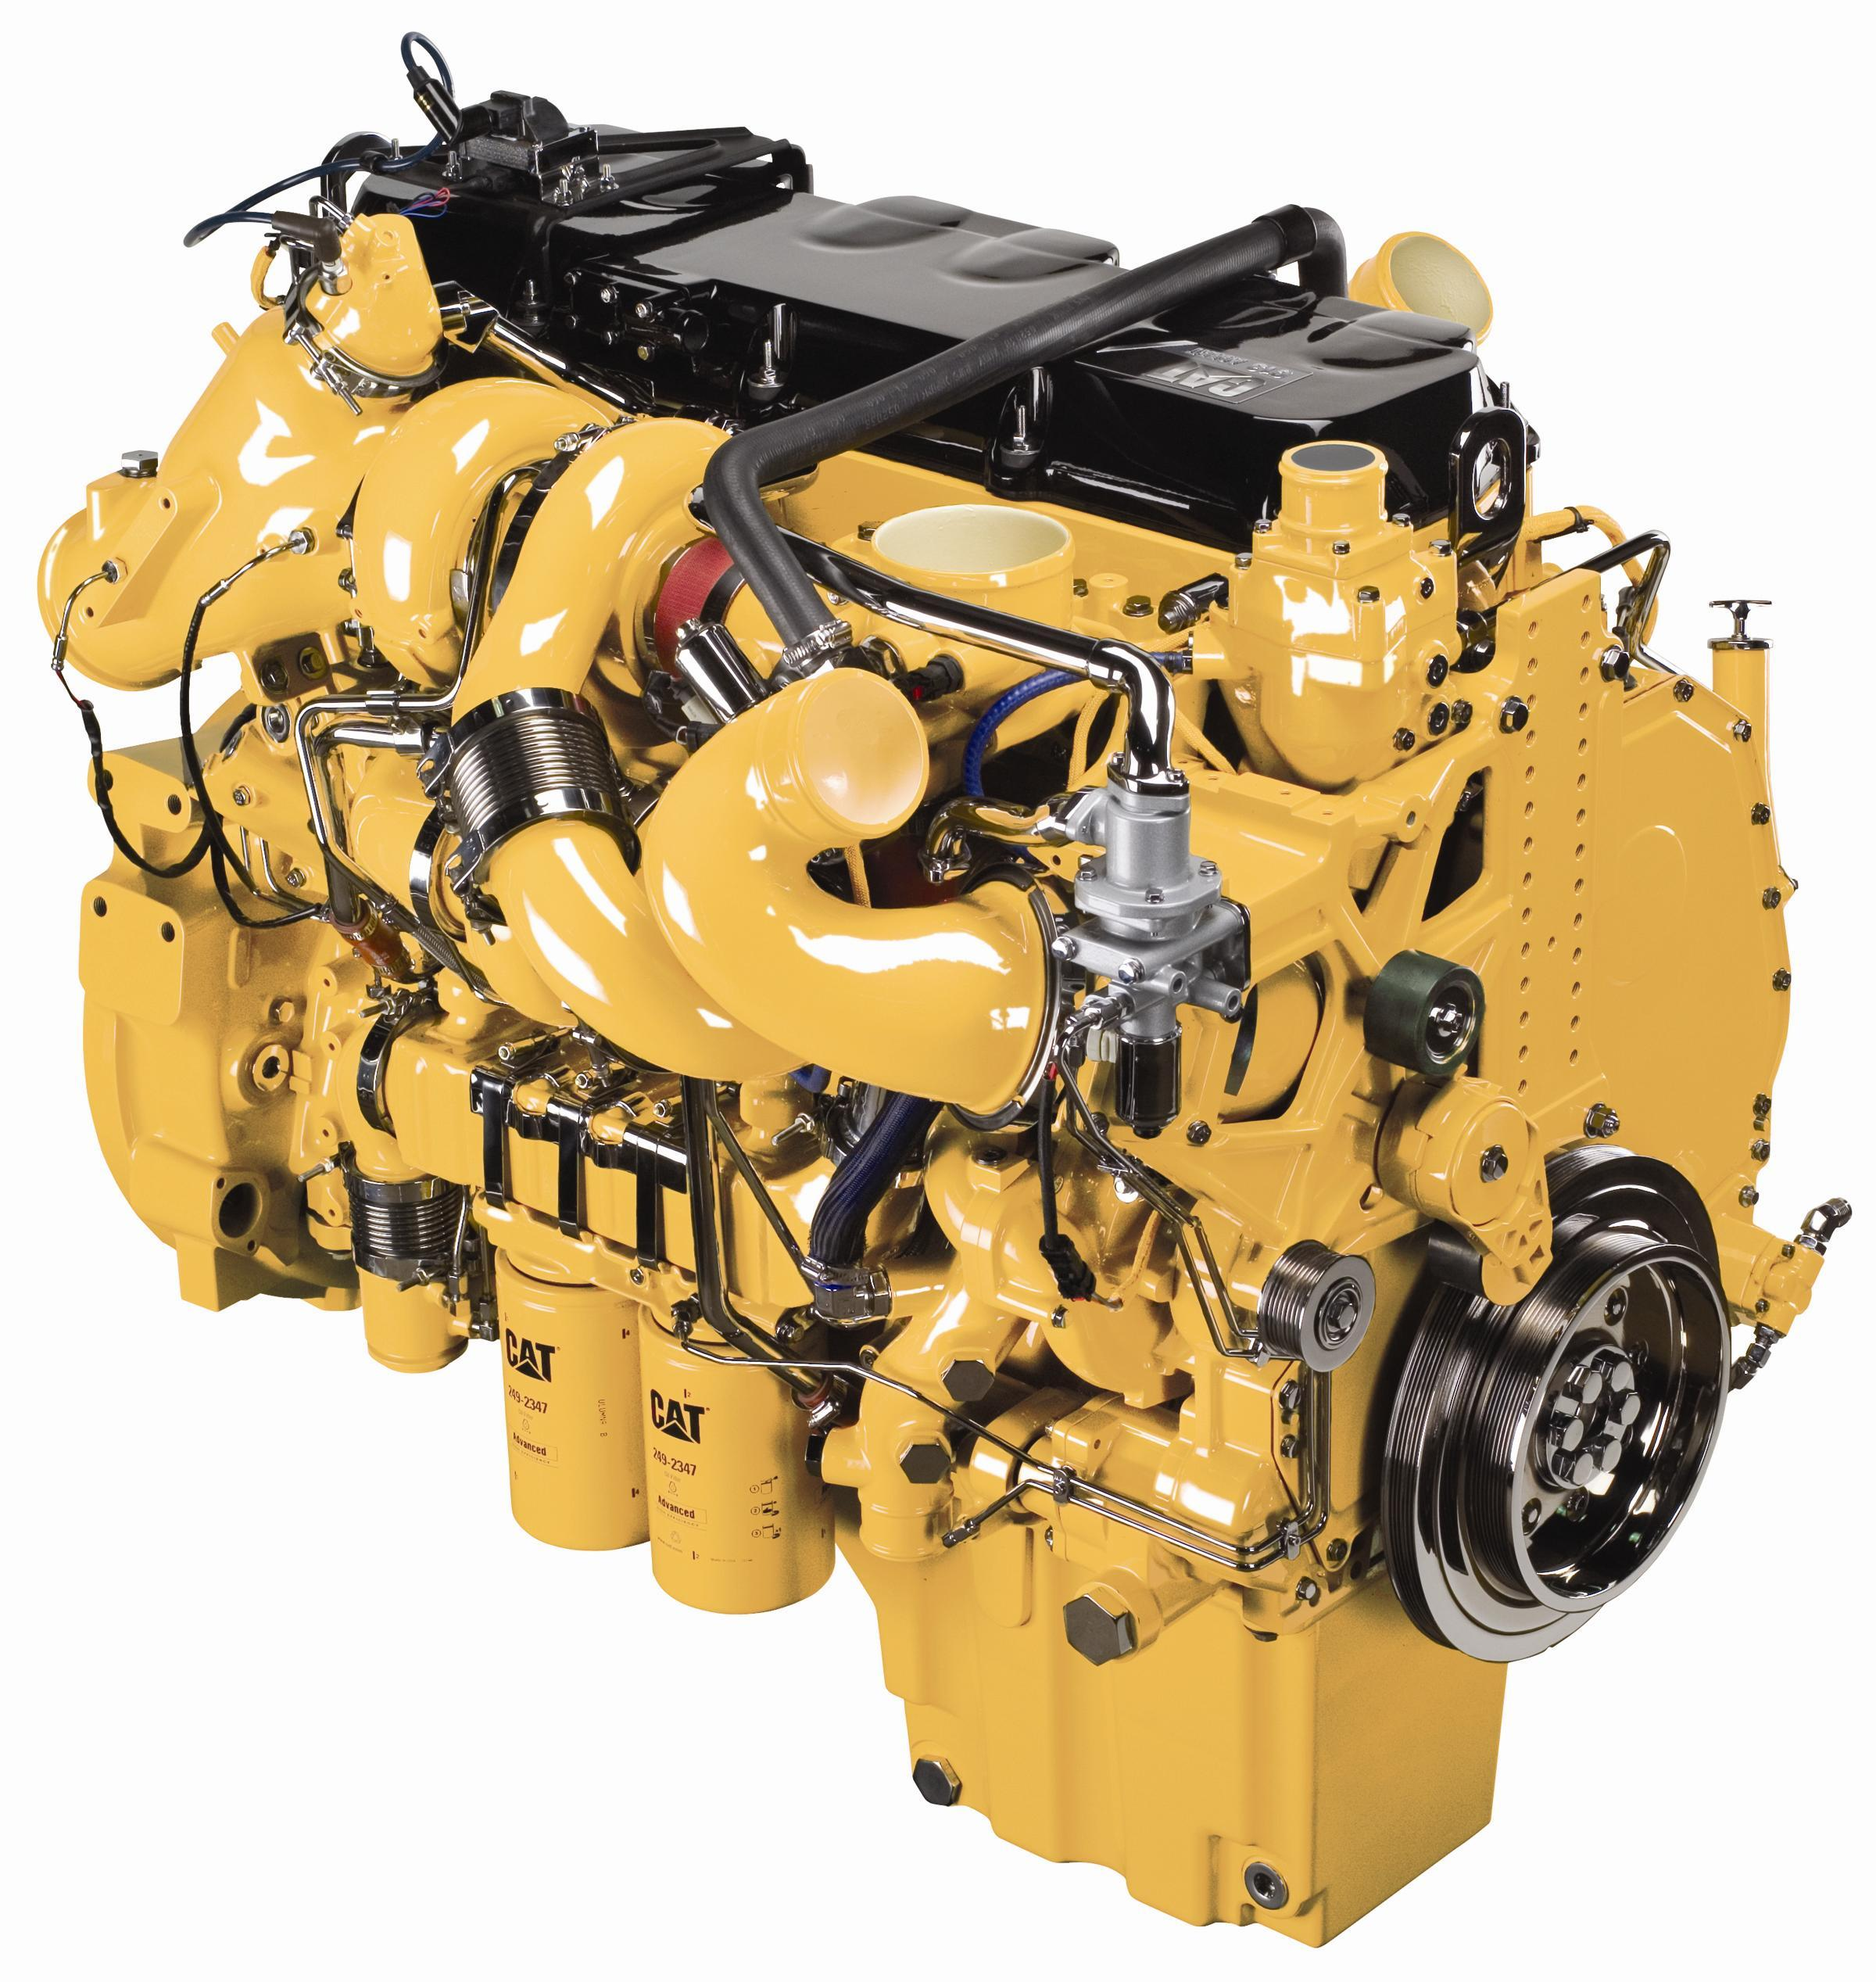 Caterpillar reaches $60 million settlement in class action over alleged  engine defects – Machine.Market Minutes